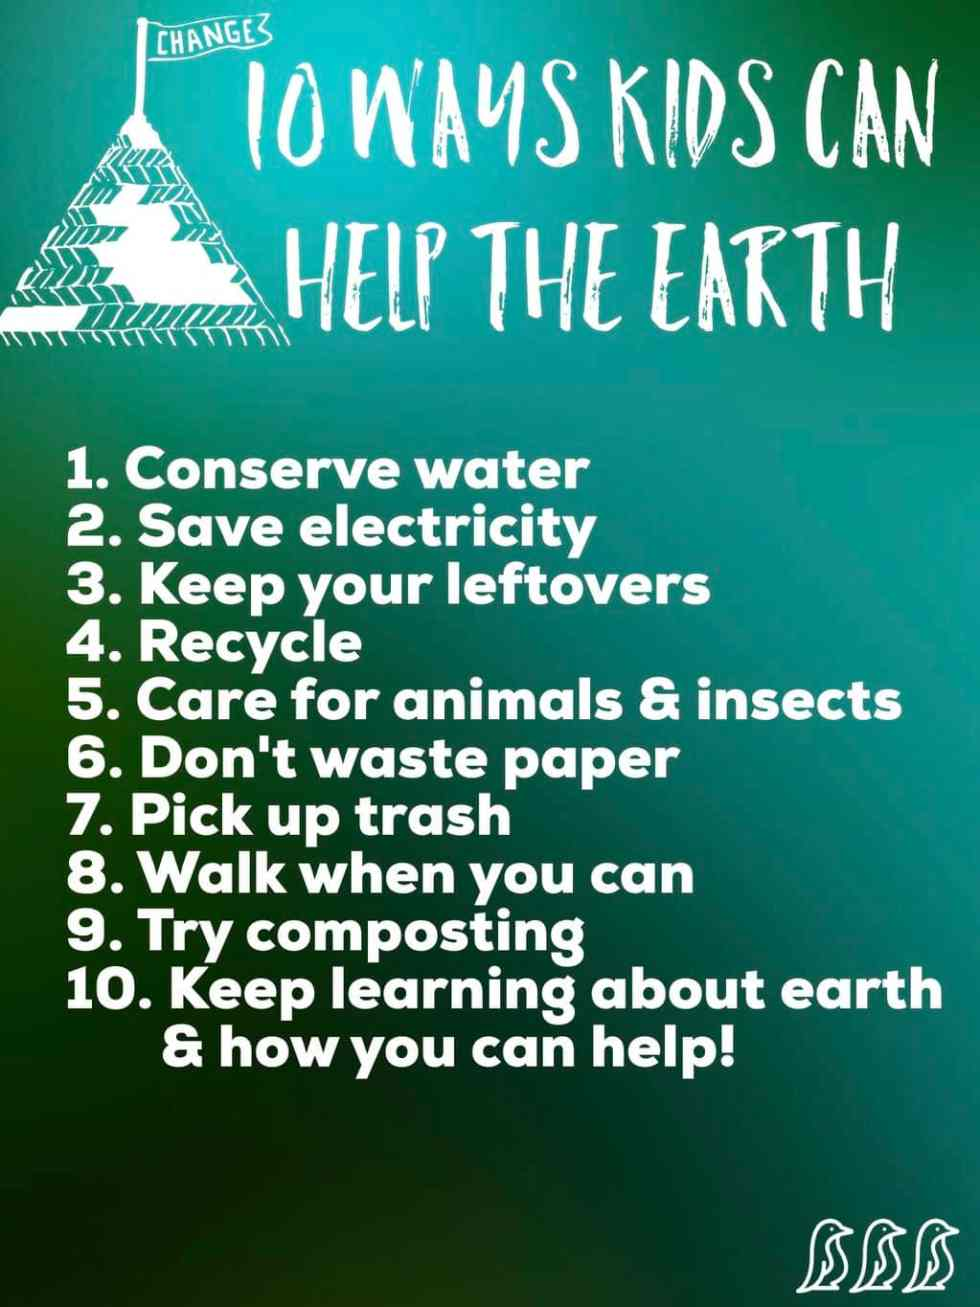 10 ways kids can help the earth